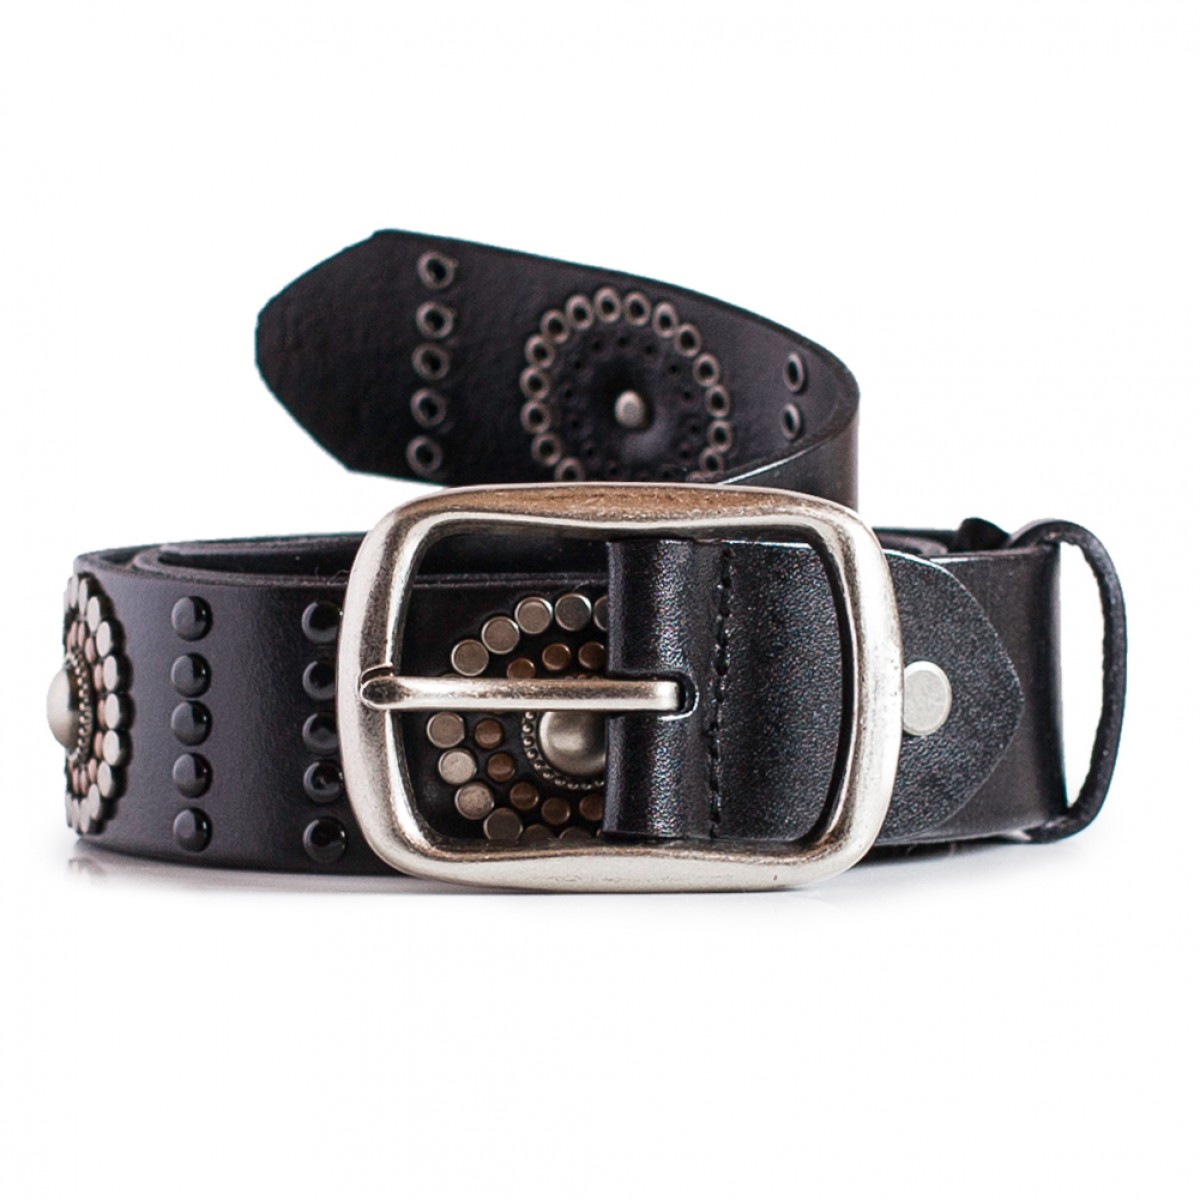 Our edit of women's belts features everything from bold logo emblazoned designs to more understated styles from Burberry, Givenchy, Valentino & many more.